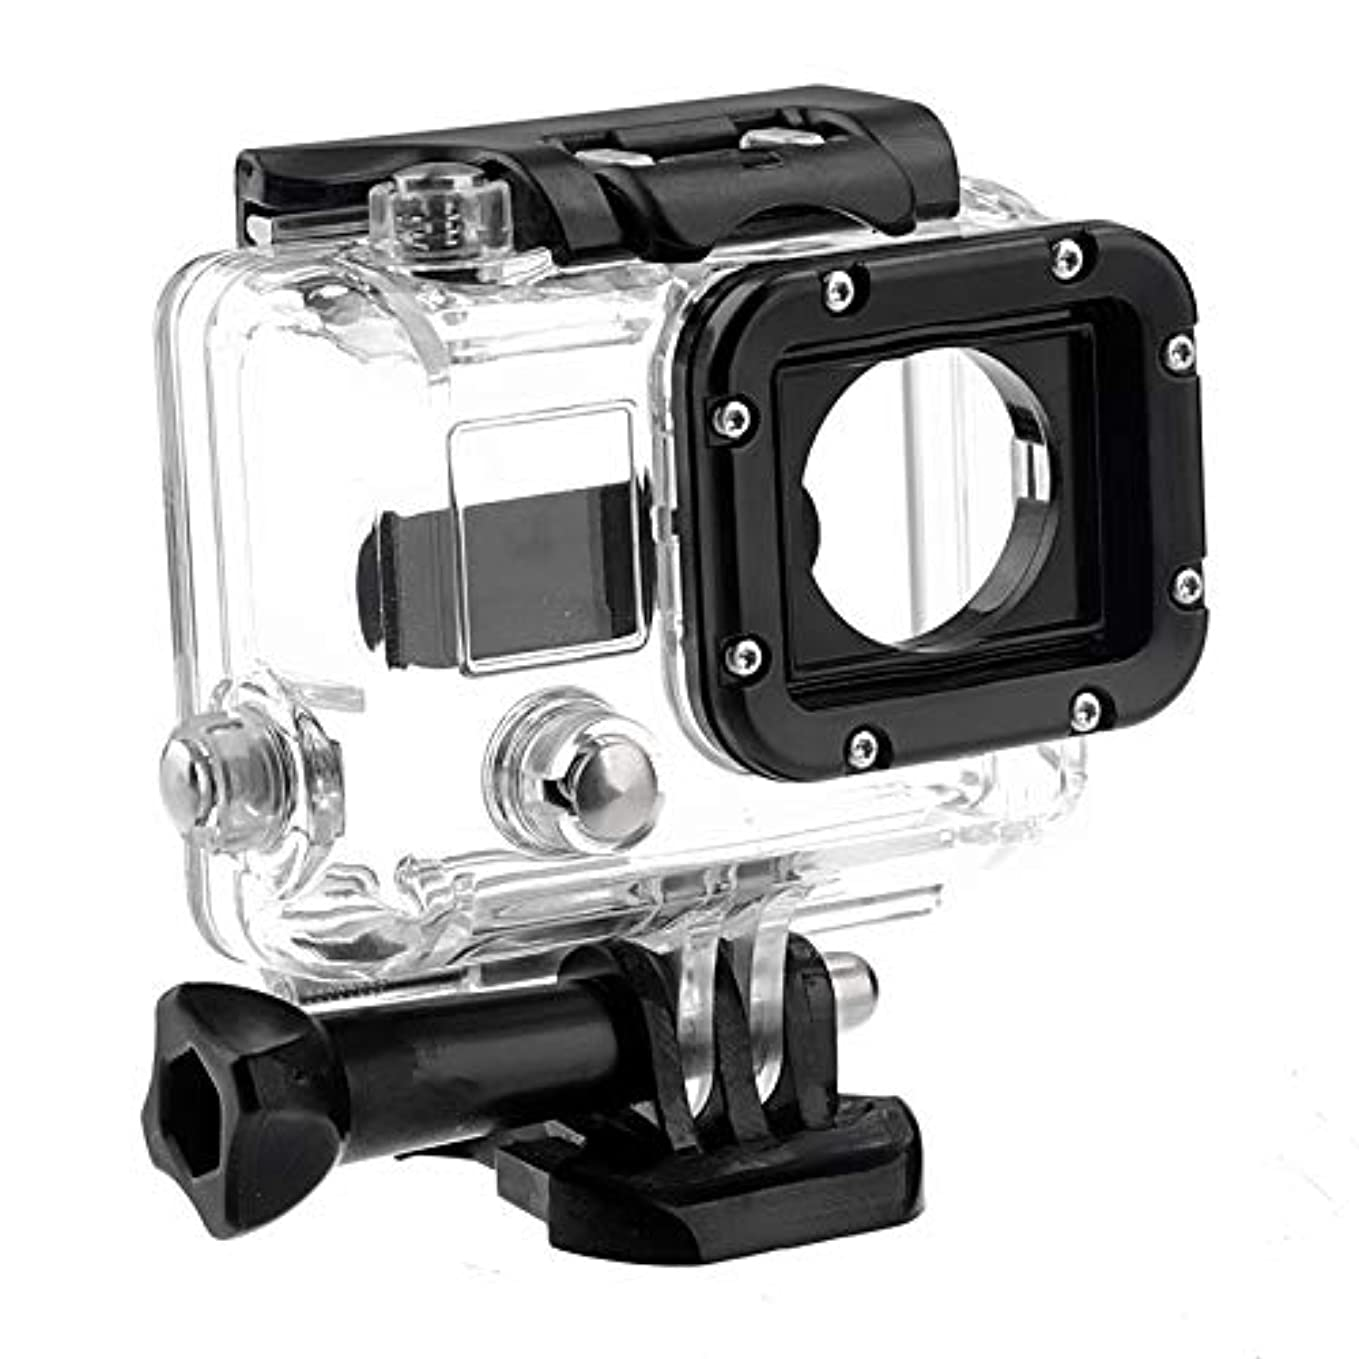 ST-30 Skeleton Protective Housing Without Lens for GoPro HERO3, Open Side for FPV, Without Cable Durable pe2307166370936